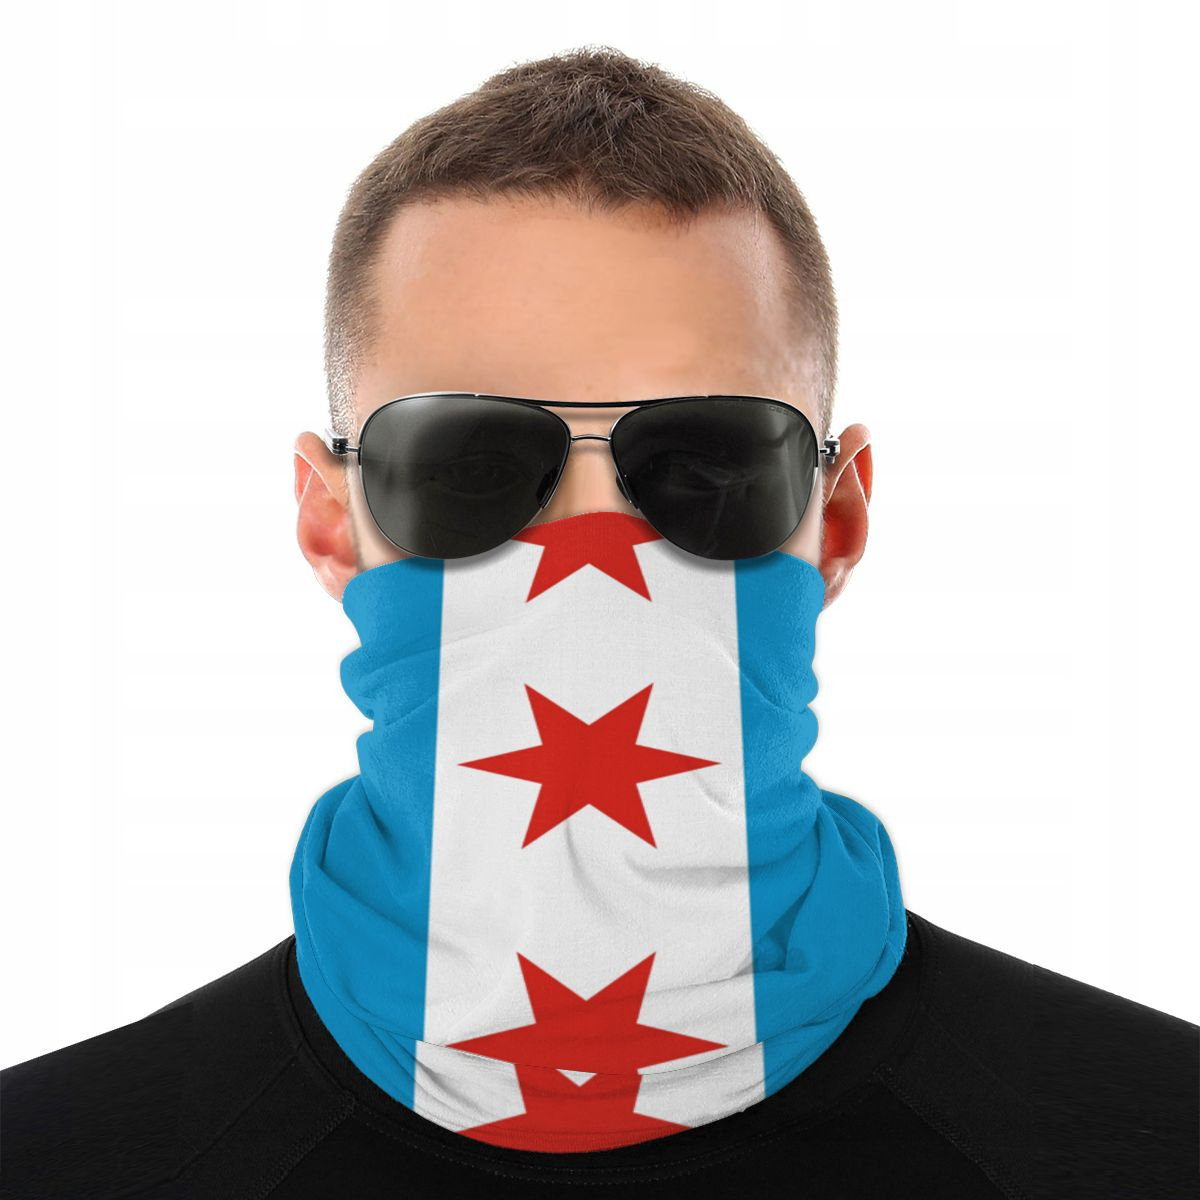 Chicago Flag Scarves Half Face Mask Men Women Fashion Tube Scarf Tubular Bandanas Polyester Headwear Biking Hiking